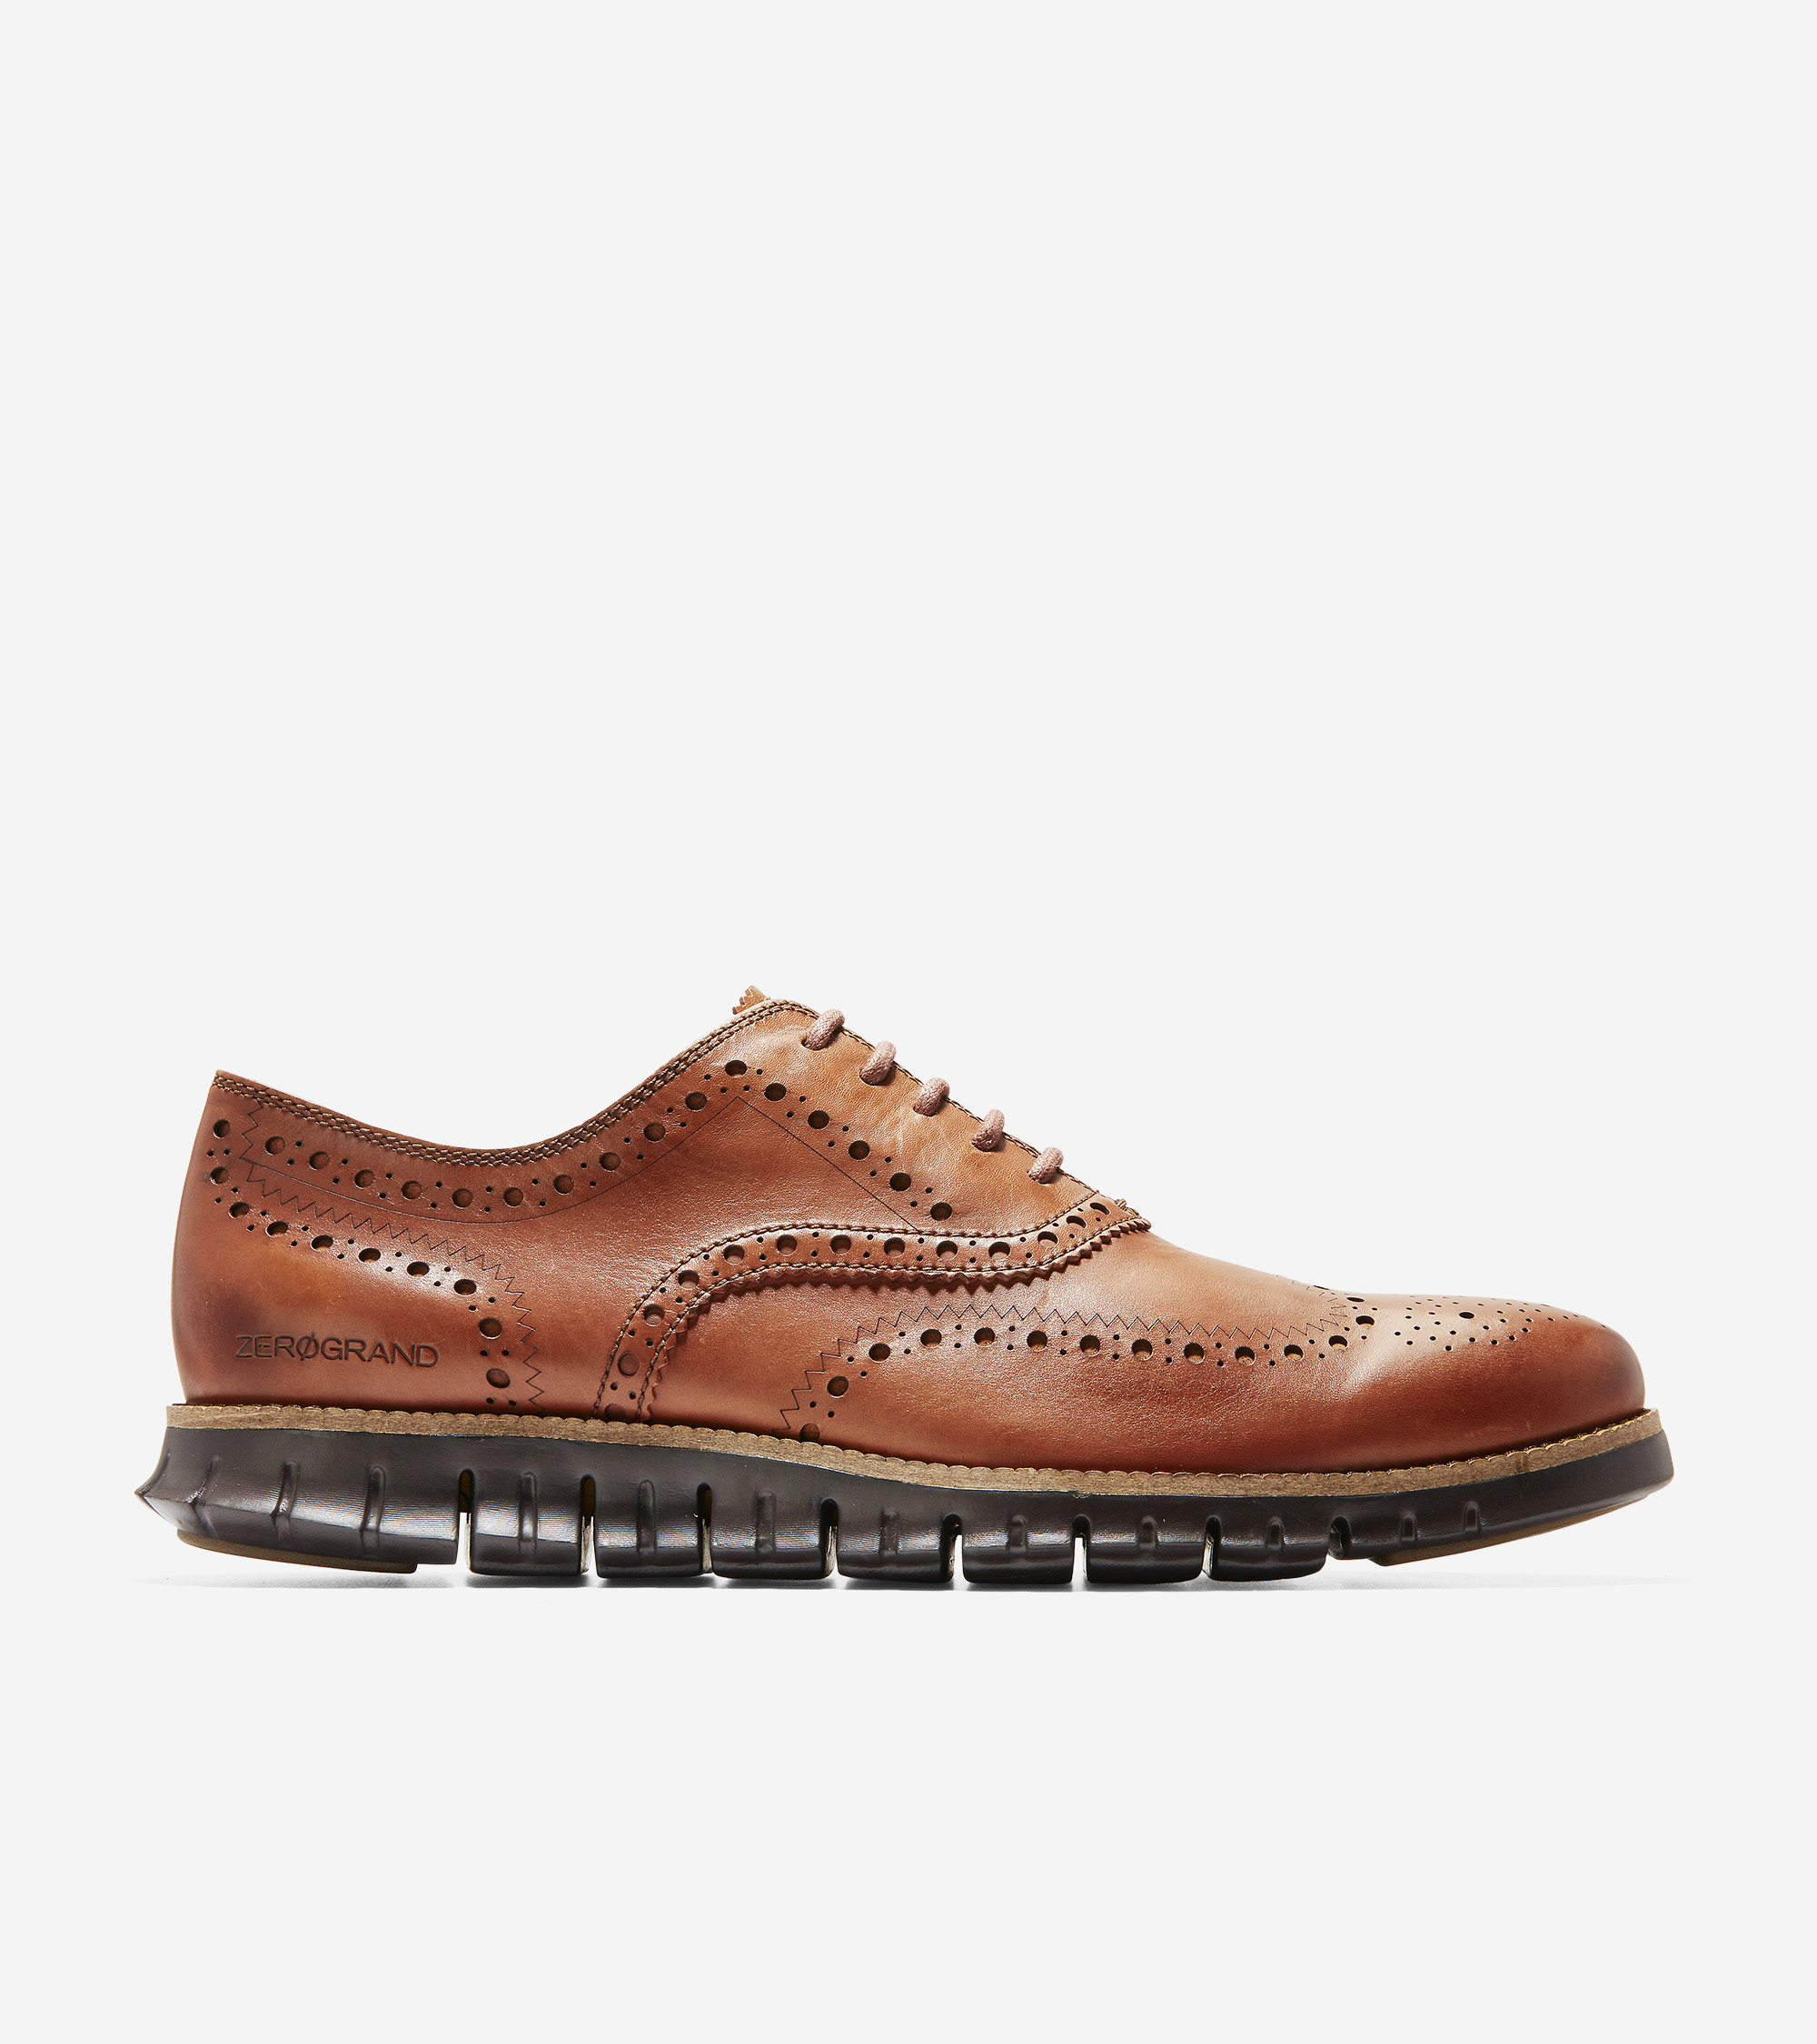 7d4b7a3772a8 Men's ZERØGRAND Wingtip Oxford in British Tan-java | Cole Haan US